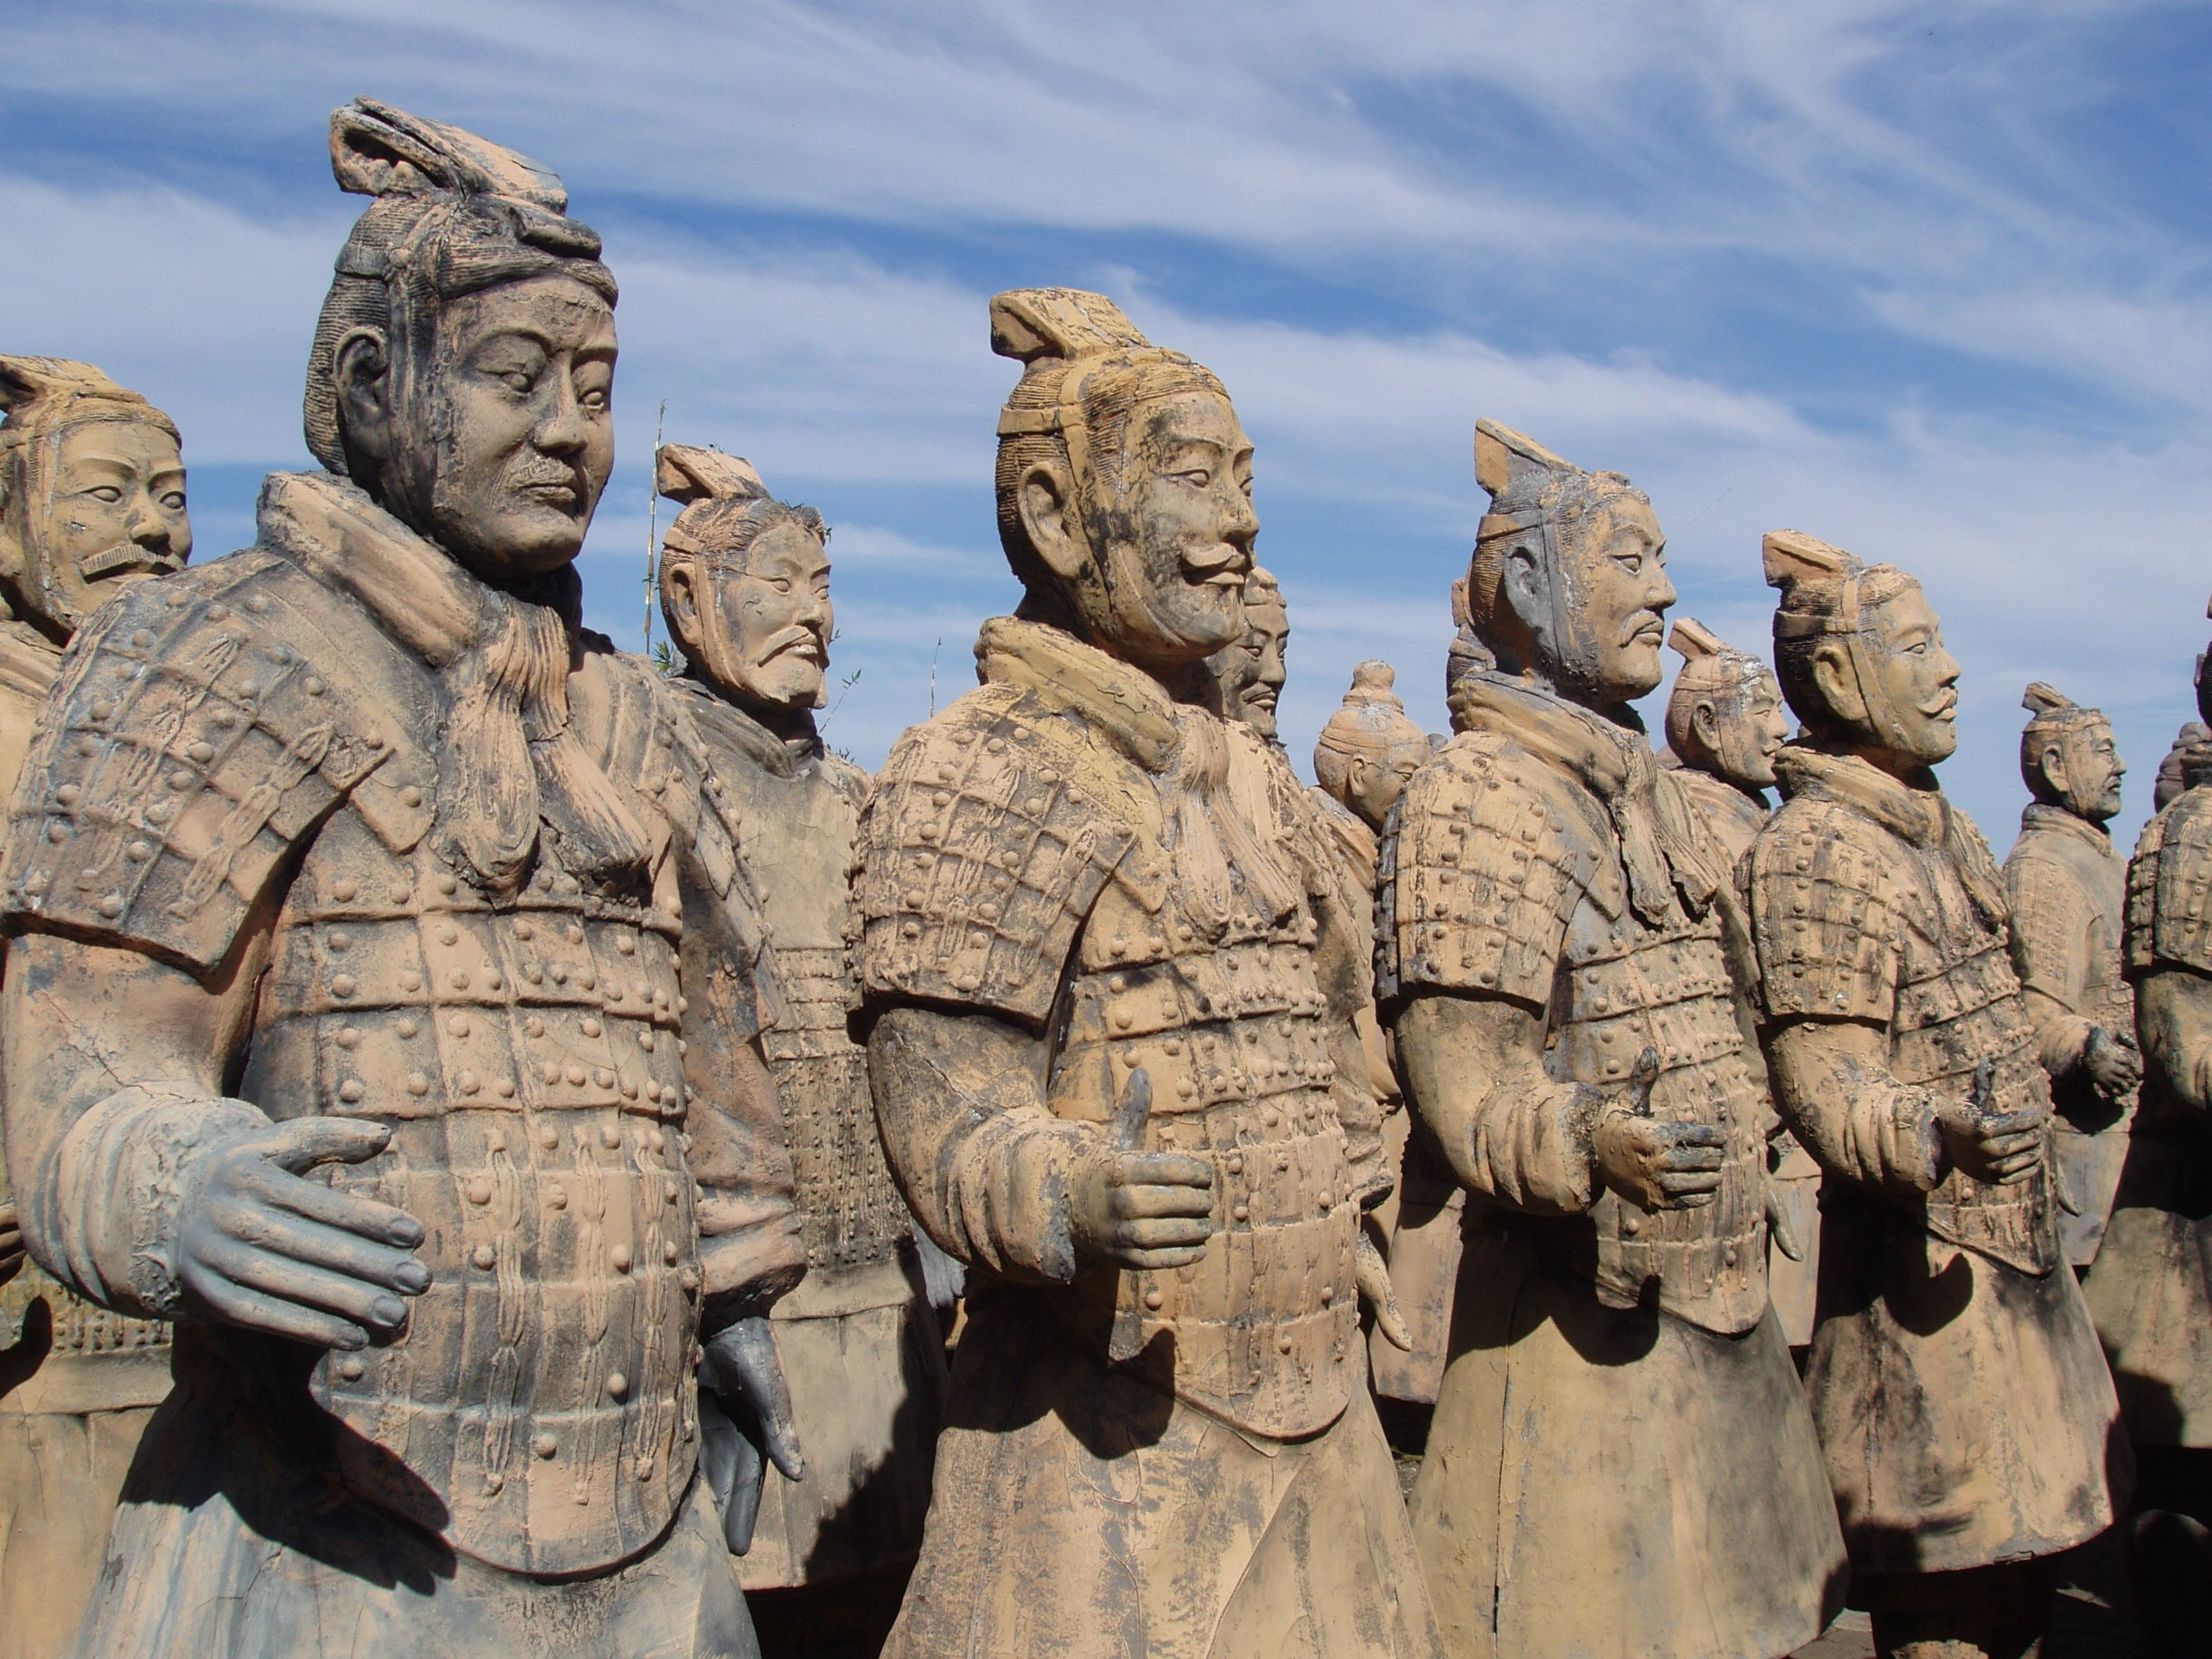 China Terra Cotta Army Warriors Google image from http://fwallpapers.com/files/images/terracotta-army-warriors-china-2.jpg